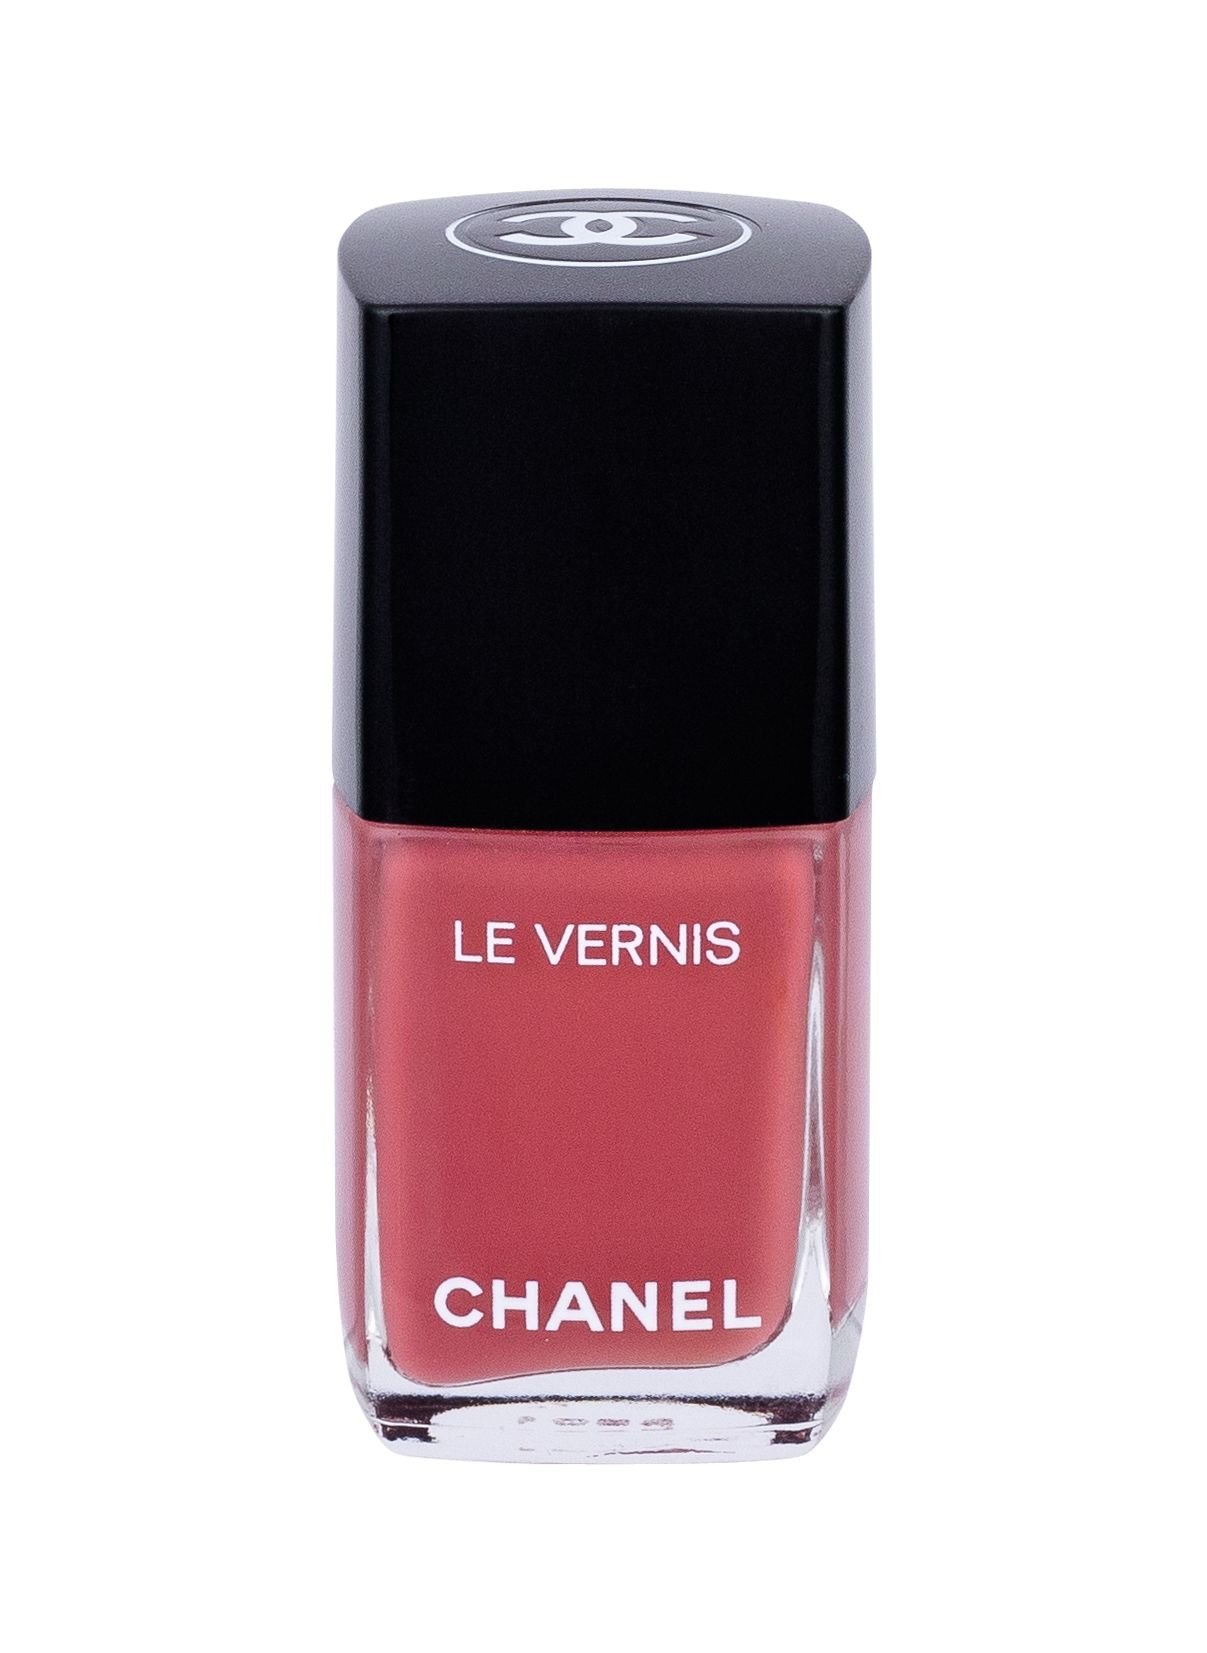 Chanel Le Vernis Nail Polish 13ml 491 Rose Confidentiel